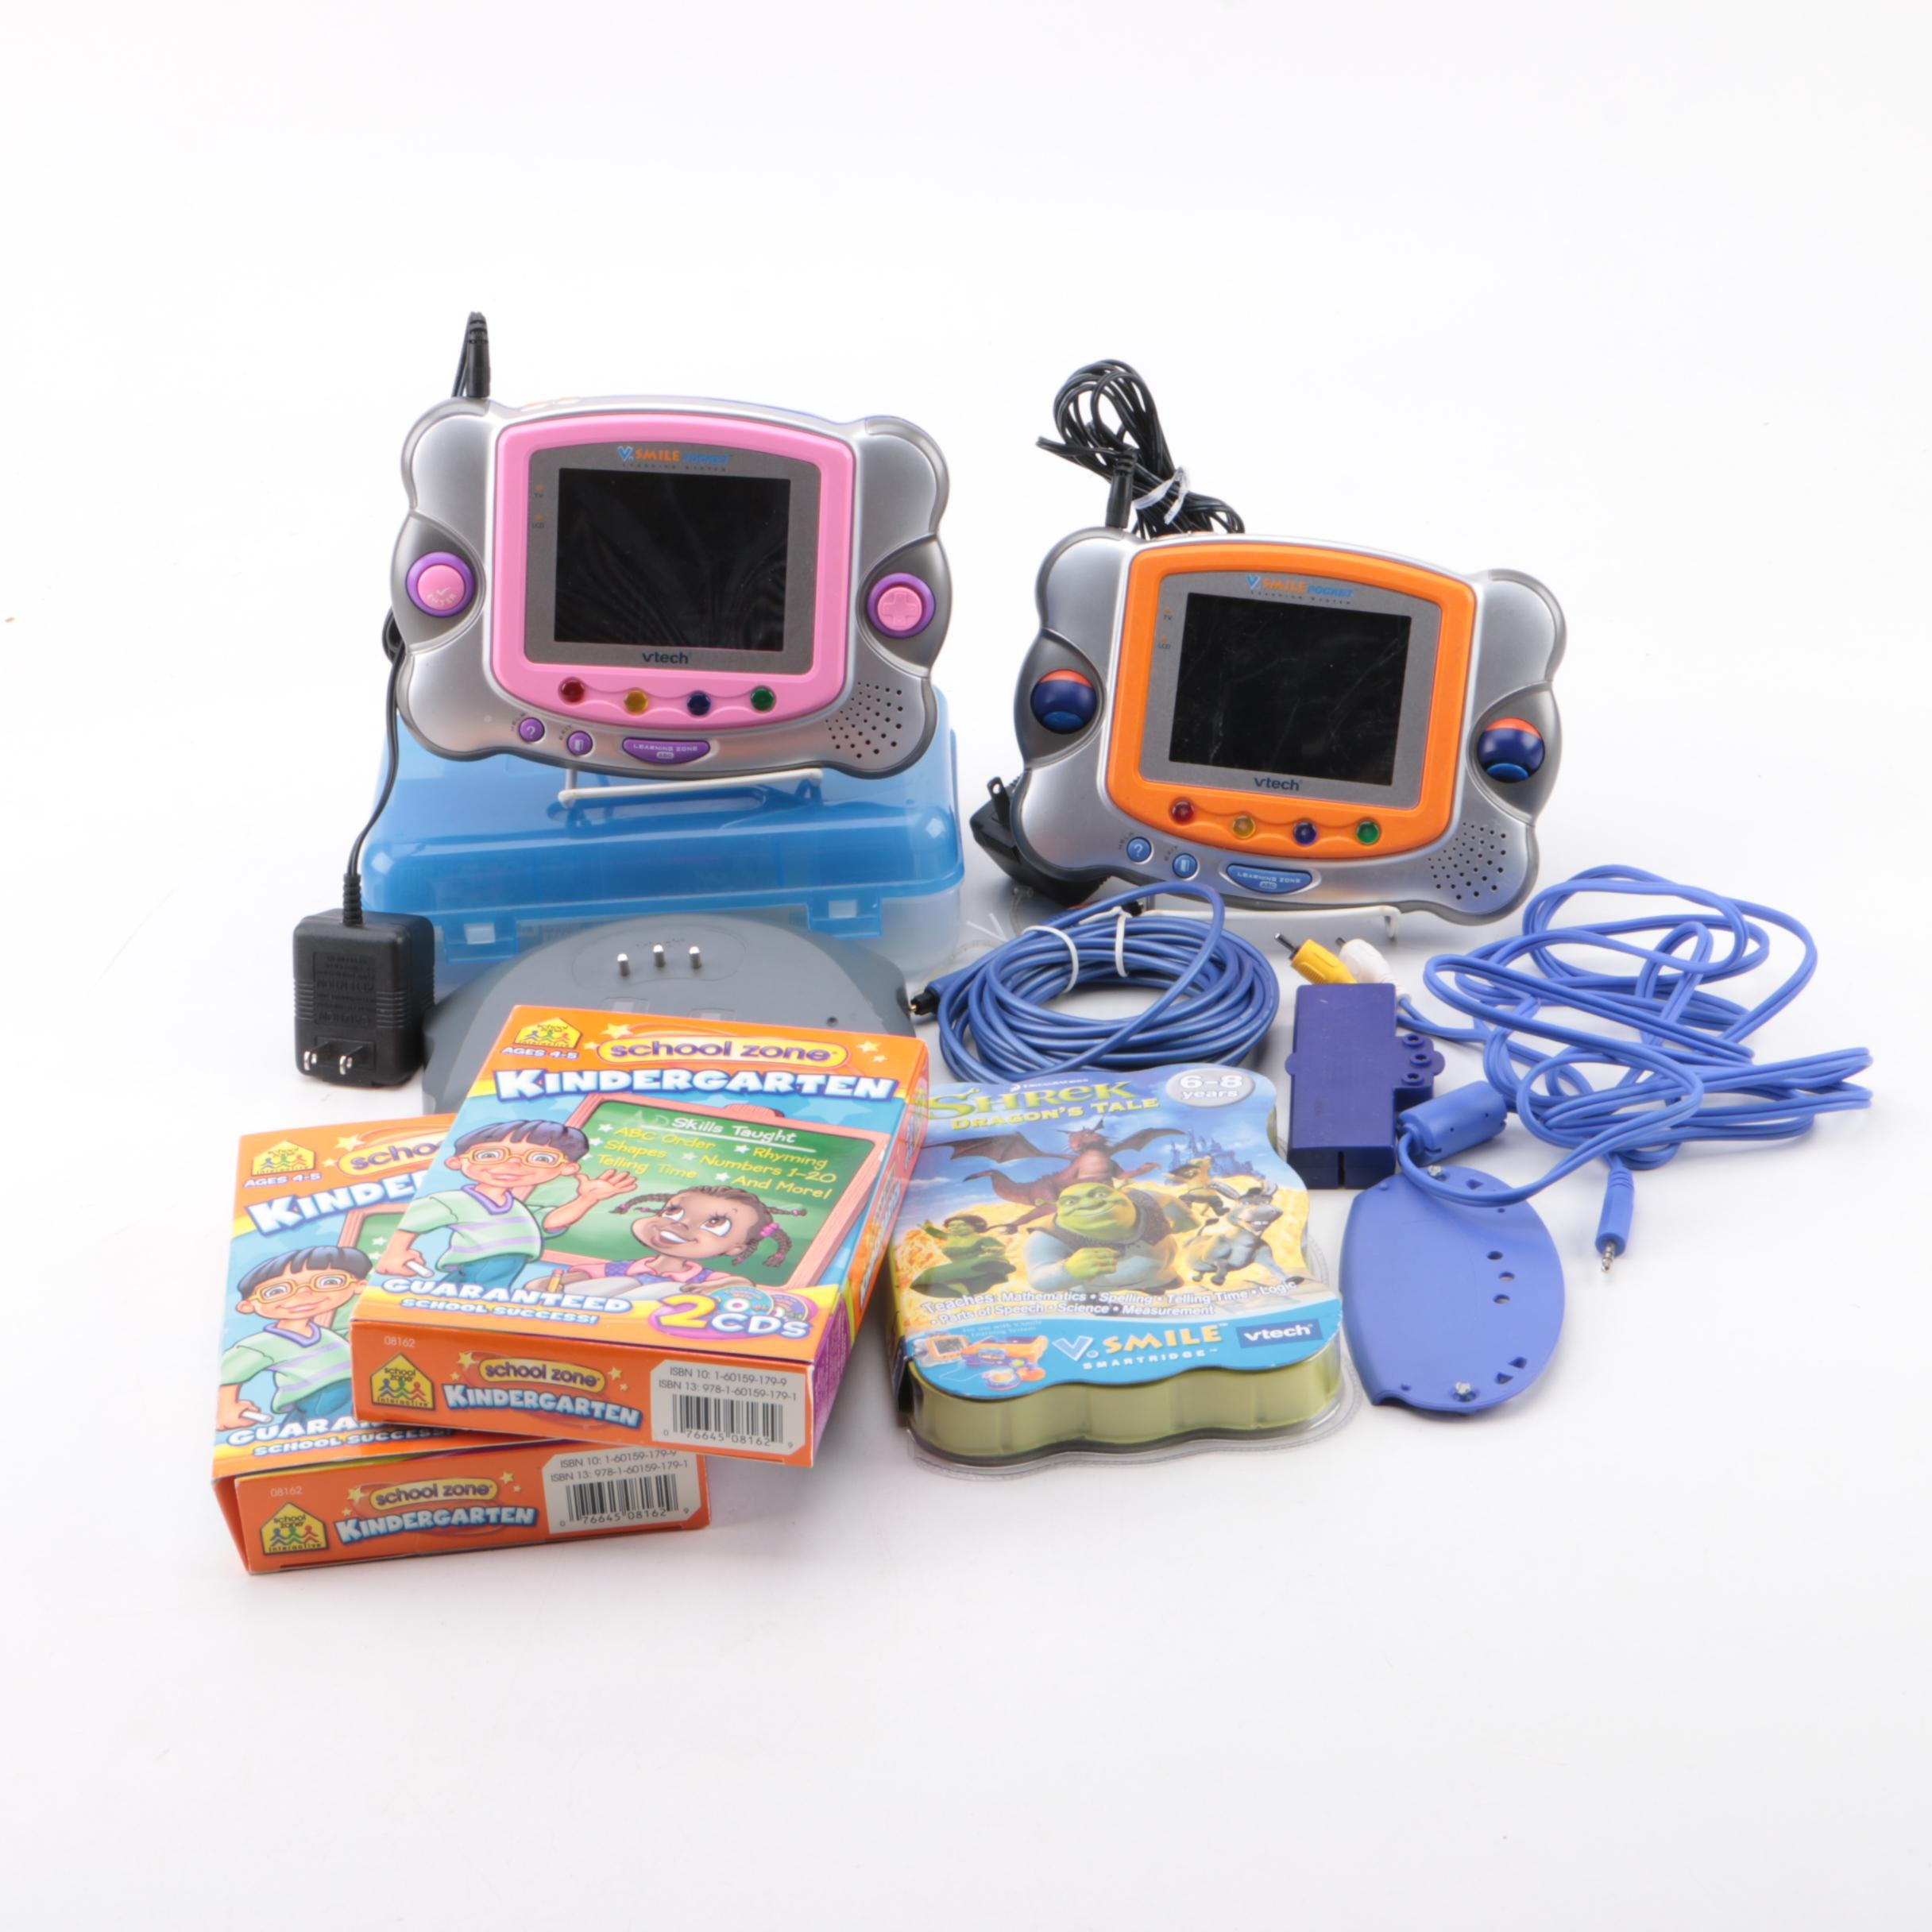 Vtech Portable Learning Systems with Games